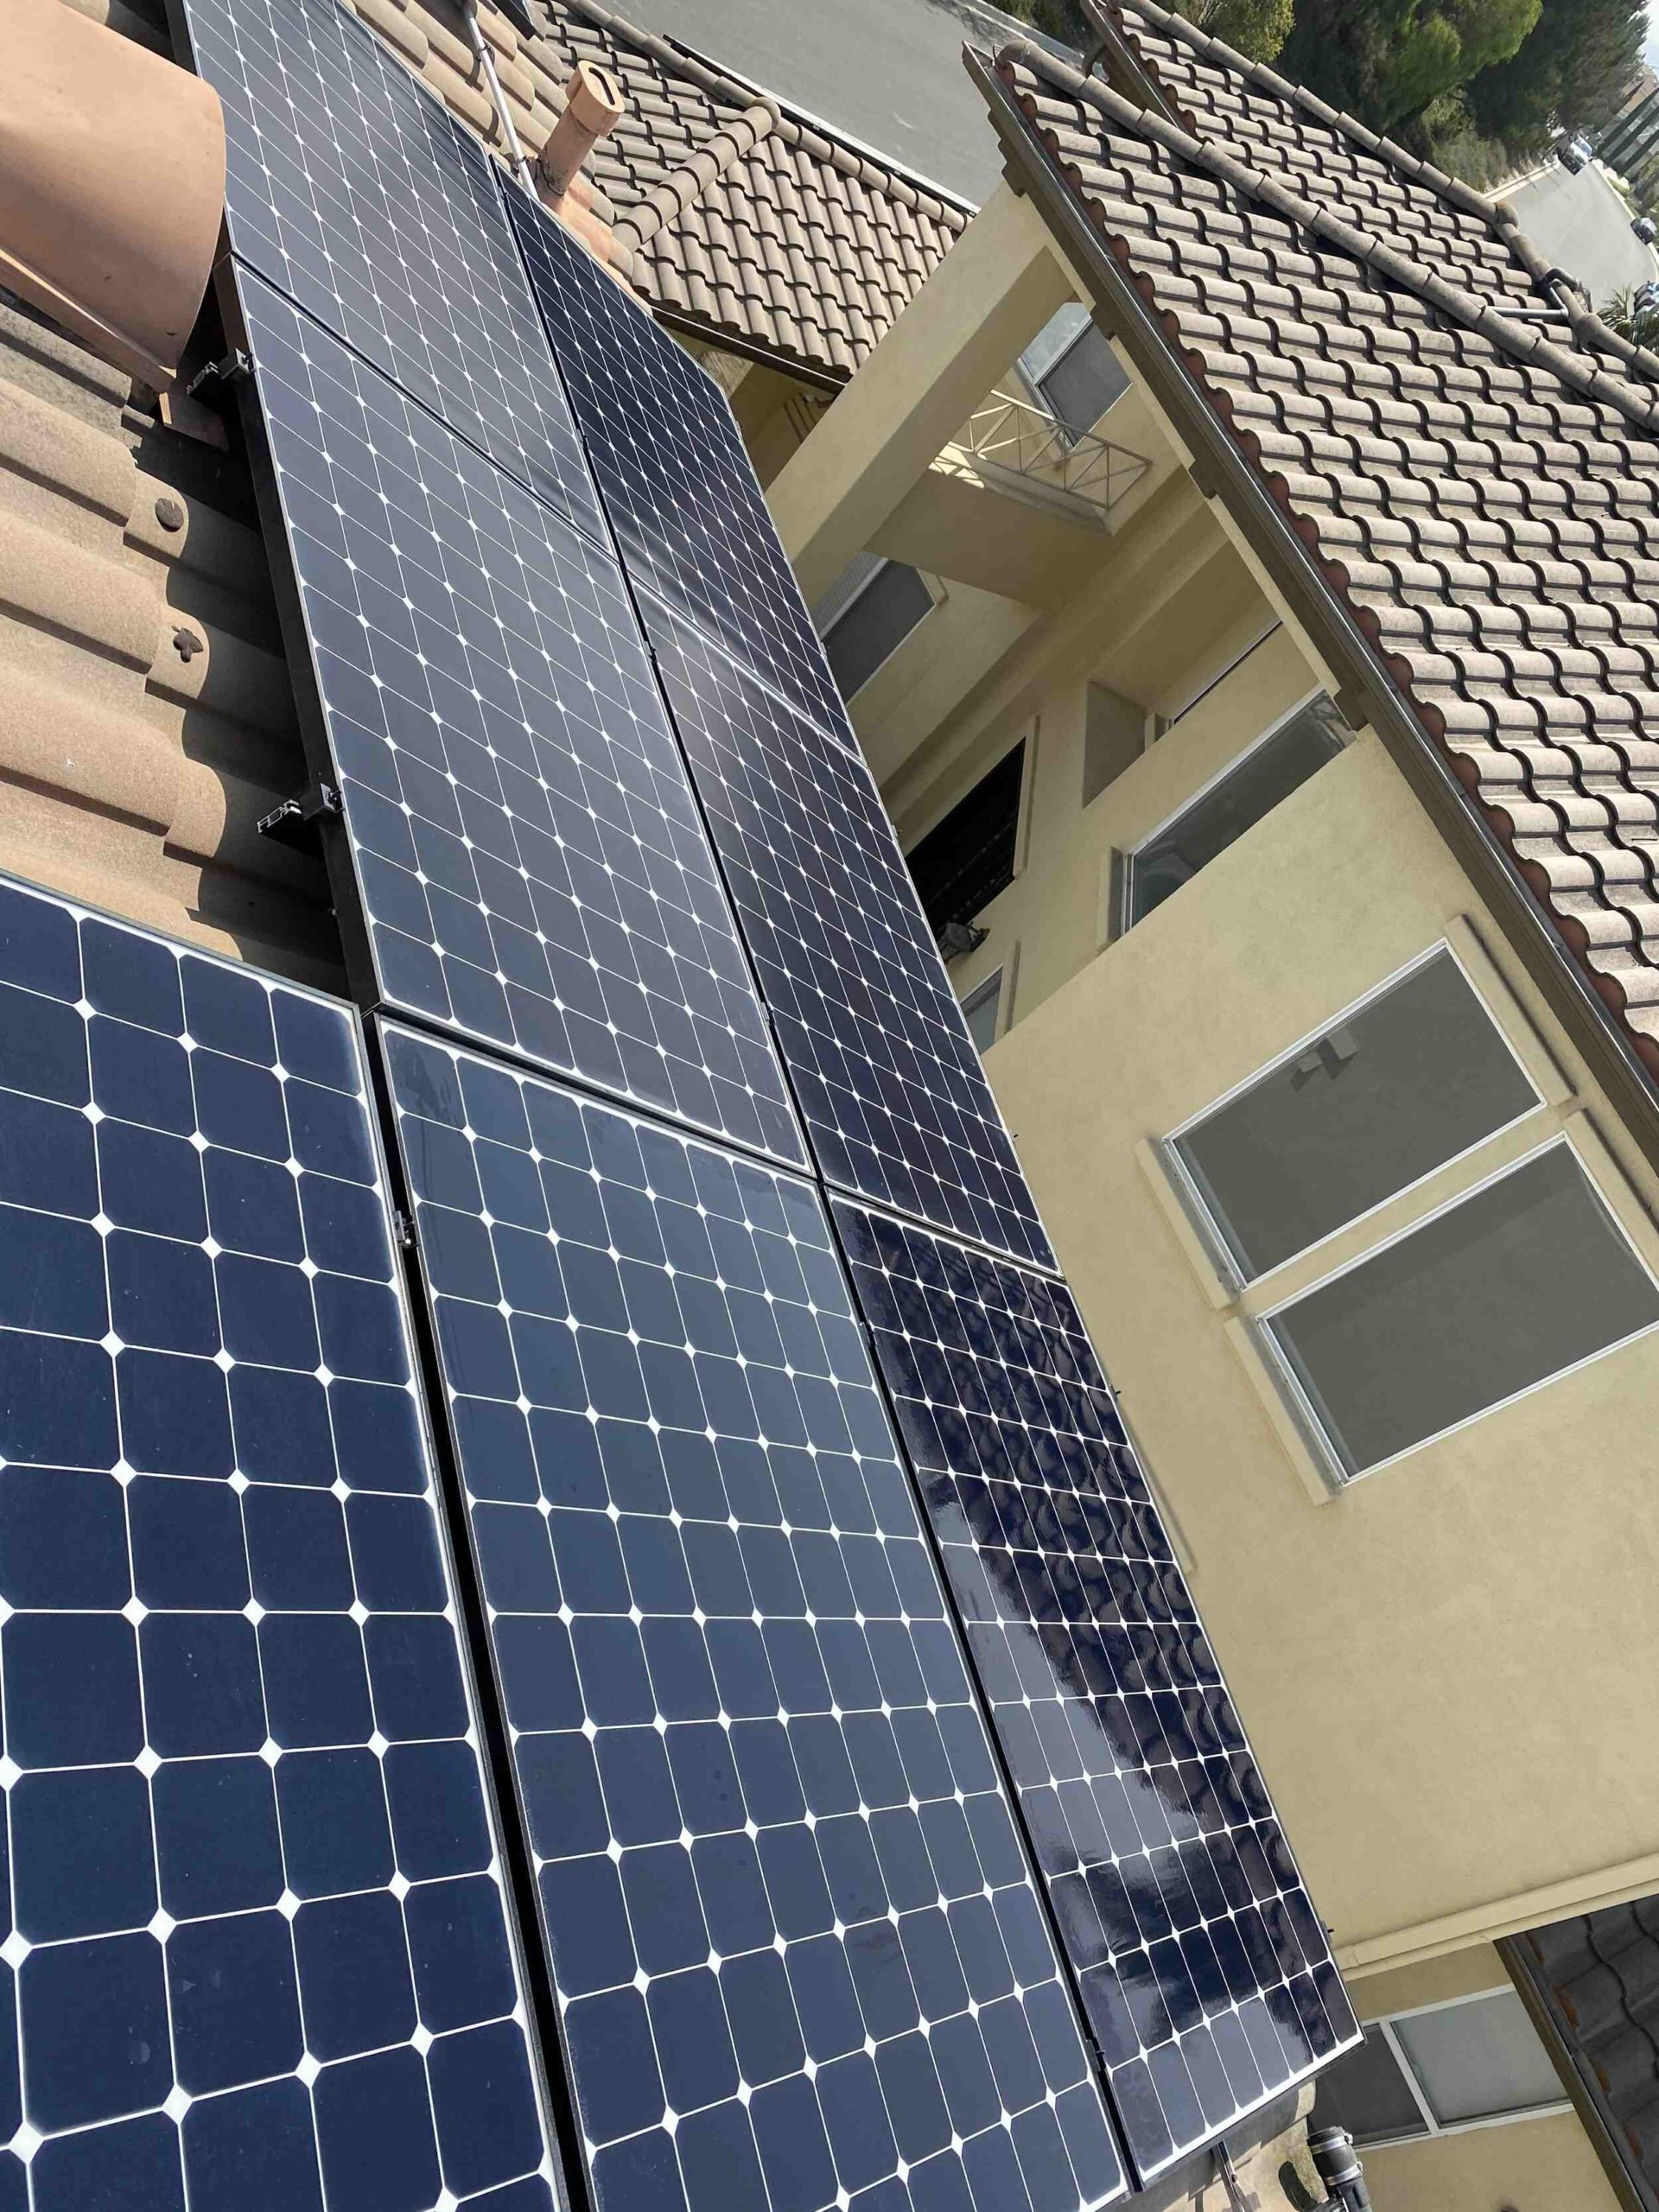 Can solar panels really save you money?